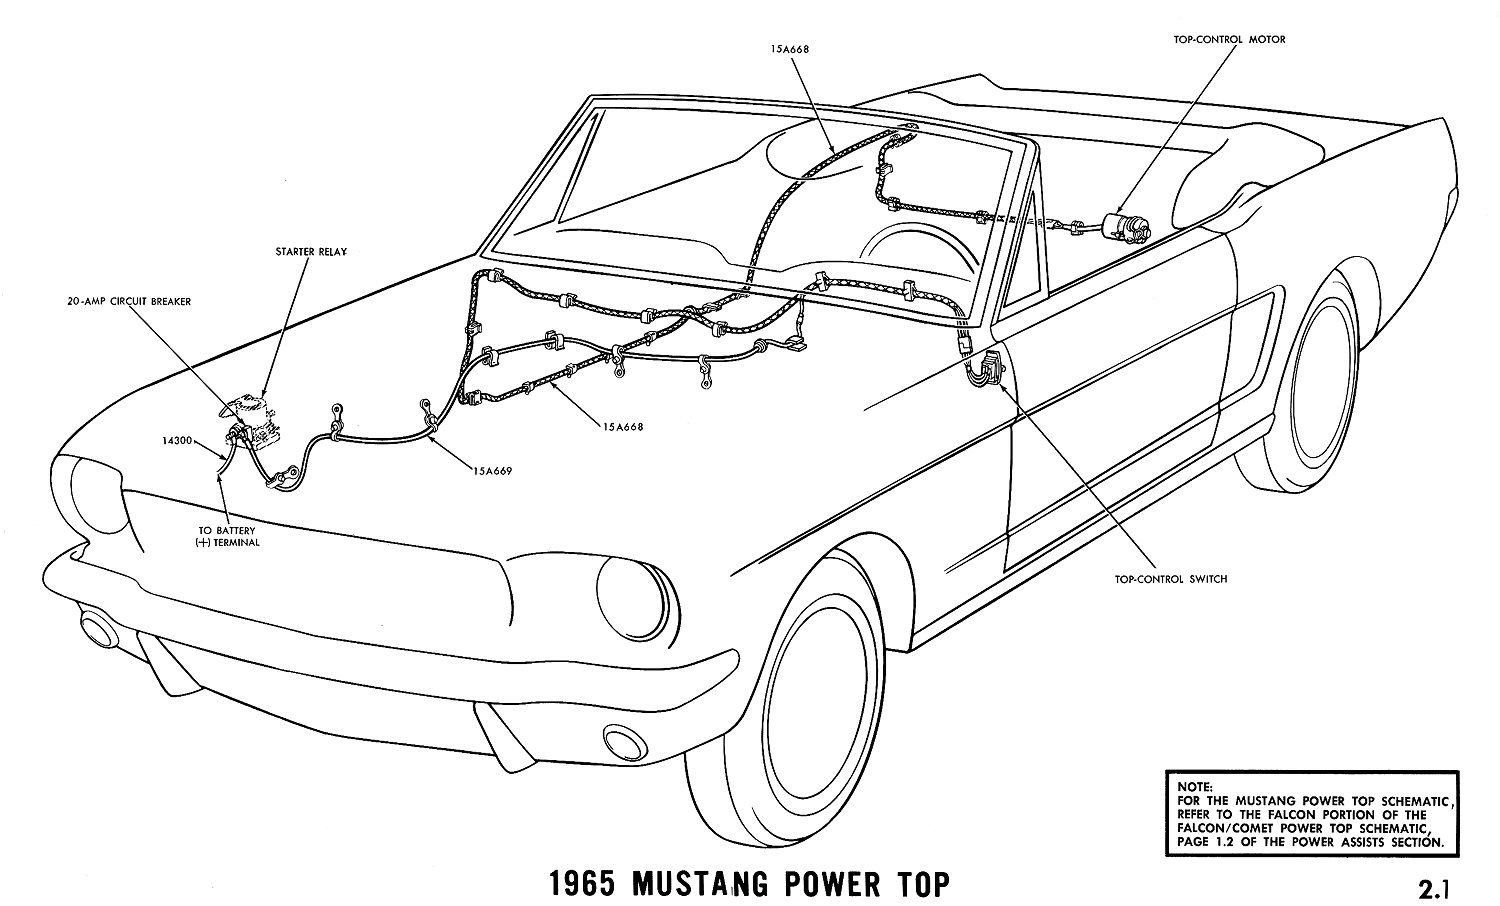 Elan In Depth together with 1965 Mustang Wiring Diagrams further Mump 1012 Ford Mustang Locking Steering Columns likewise Steering Suspension Diagrams likewise 68 Shelby Gt 500 Wiring. on 1966 ford mustang wiring diagram